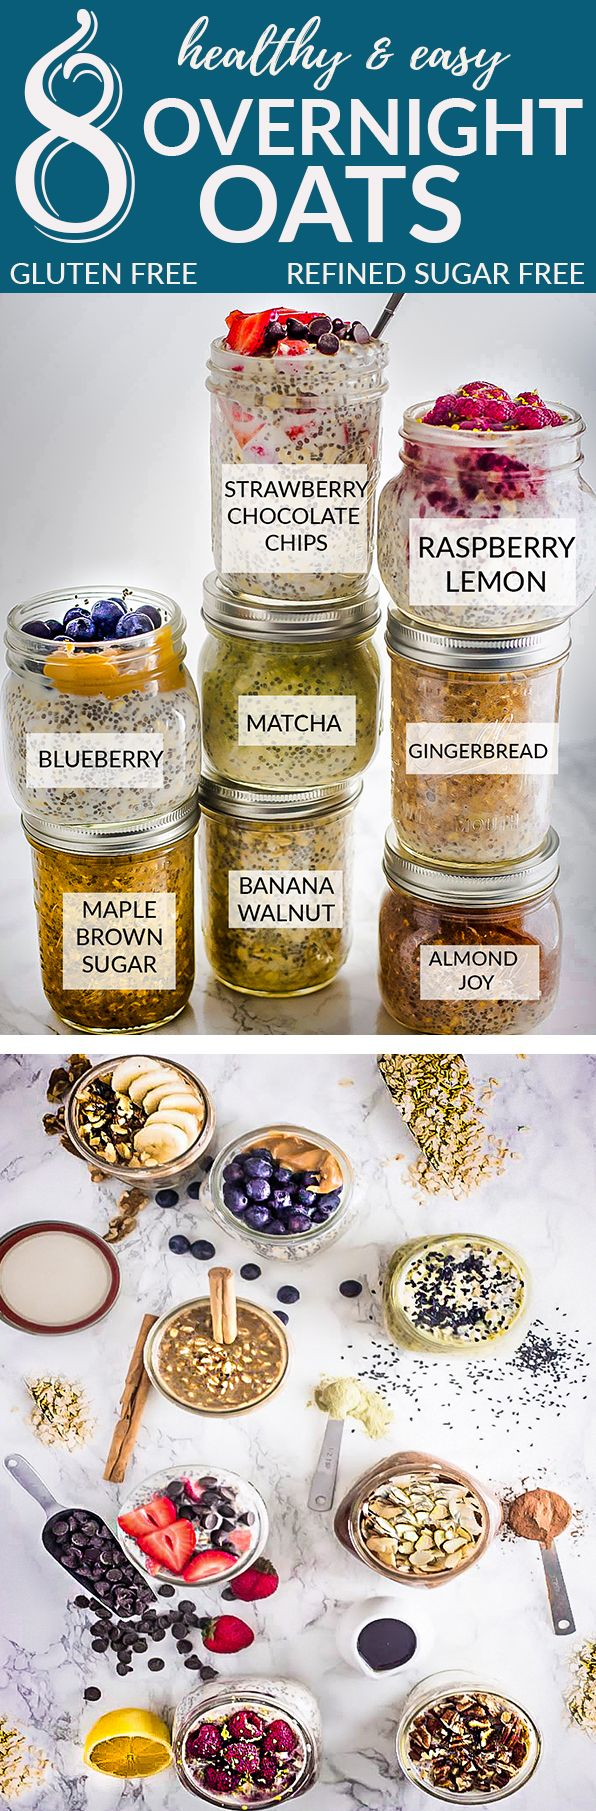 8 Healthy and delicious OVERNIGHT OATS – simple no-cook make-ahead oatmeal just perfect for busy mornings. Best of all, gluten free, refined sugar free and so easy to customize with your favorite flavors. Almond Joy, banana walnut, blueberry, maple brown